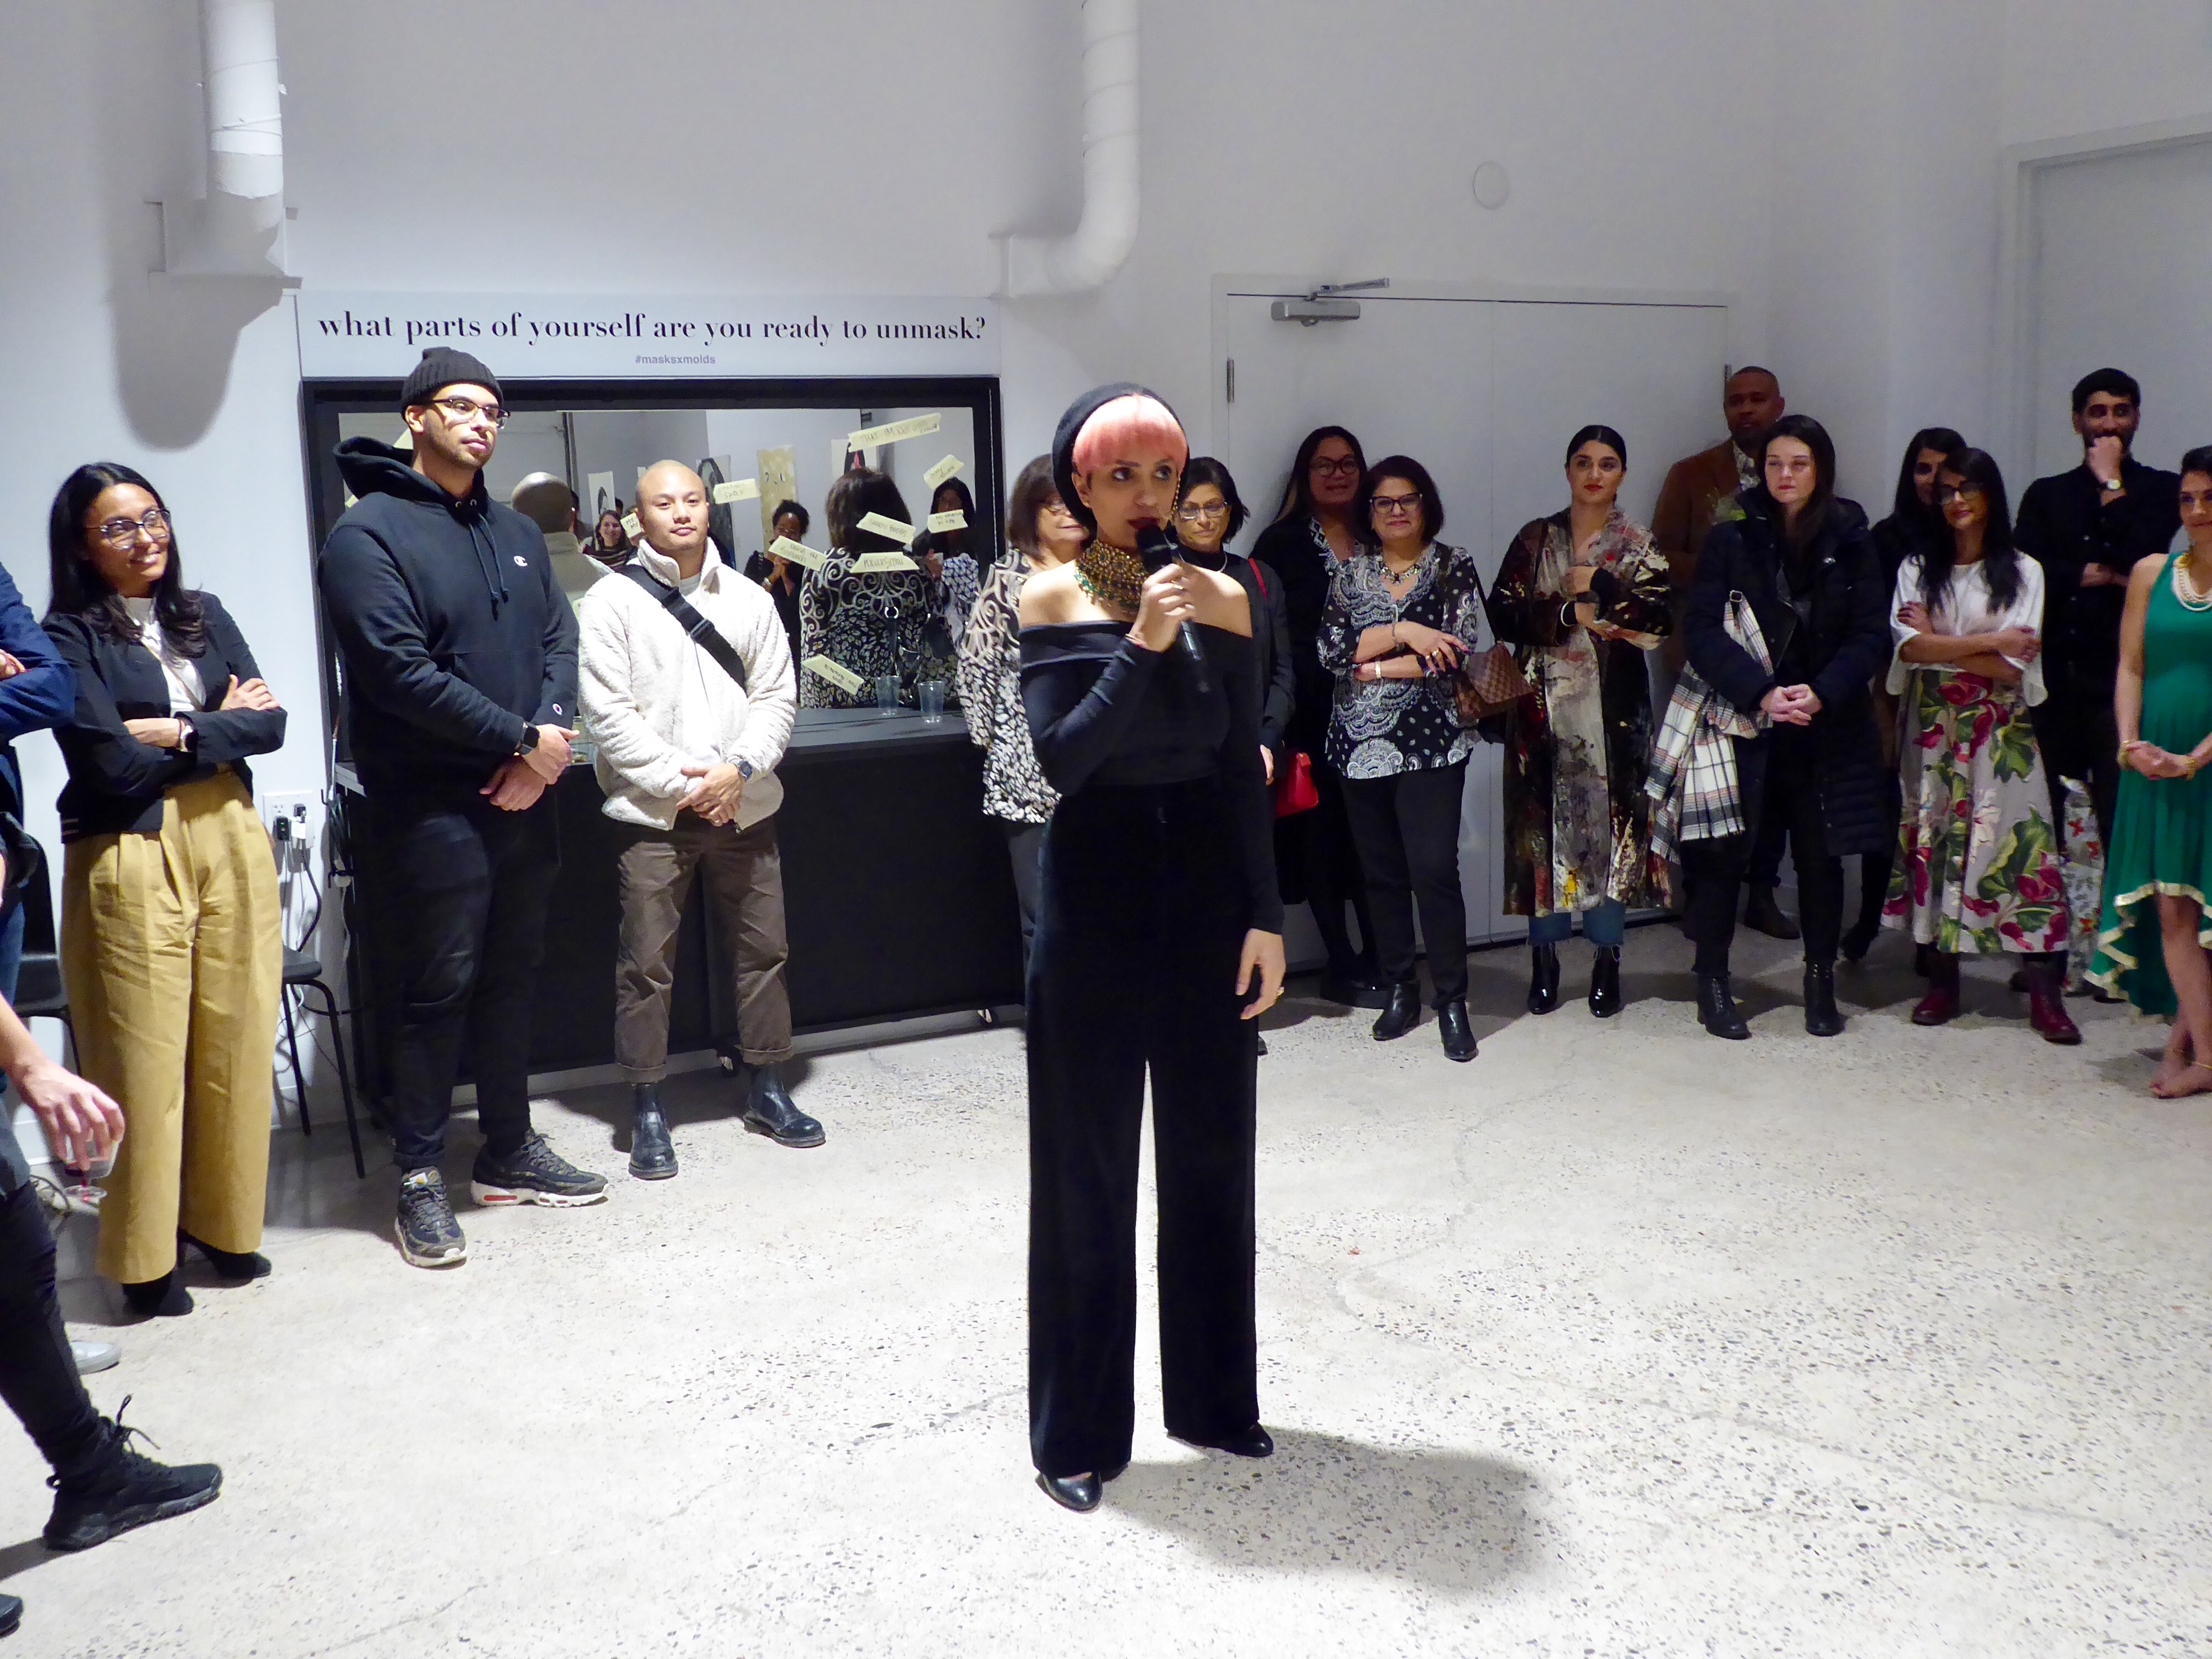 Romana Kassam presents at MasksxMolds, her first solo exhibition in Toronto. Photo by: Rejana Hirjee.